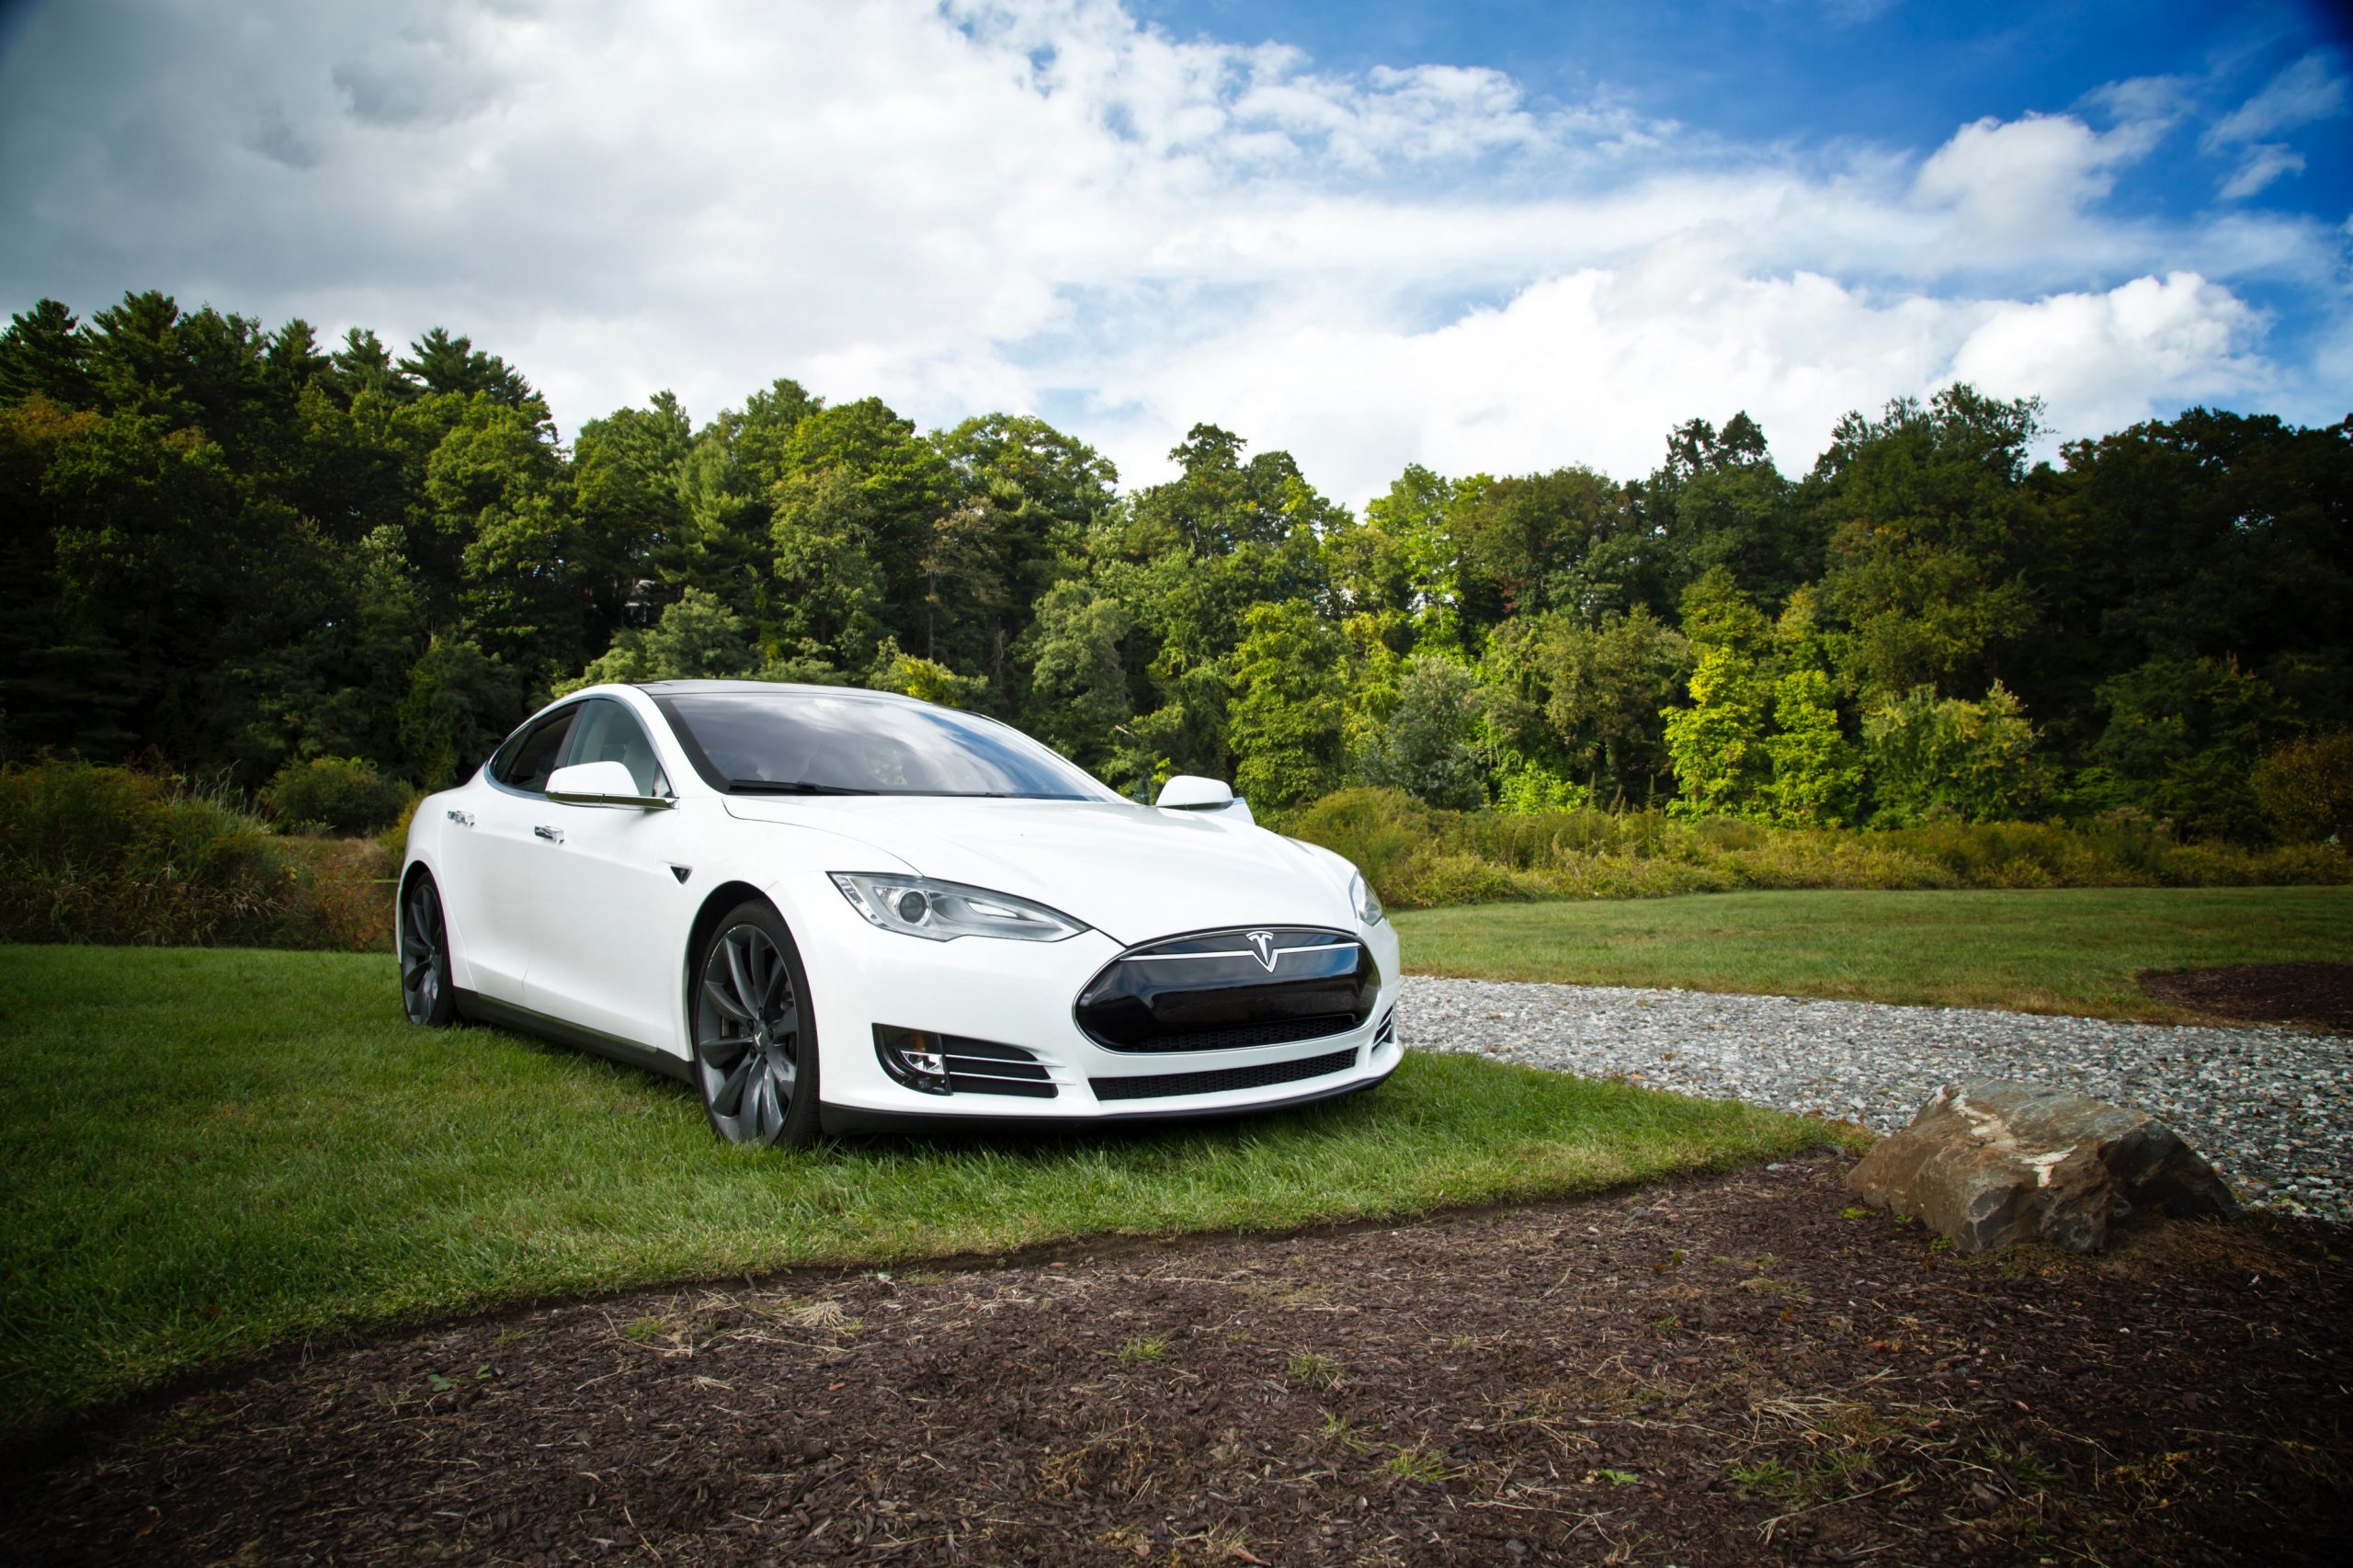 Tesla could include Apple Music and Amazon in its cars